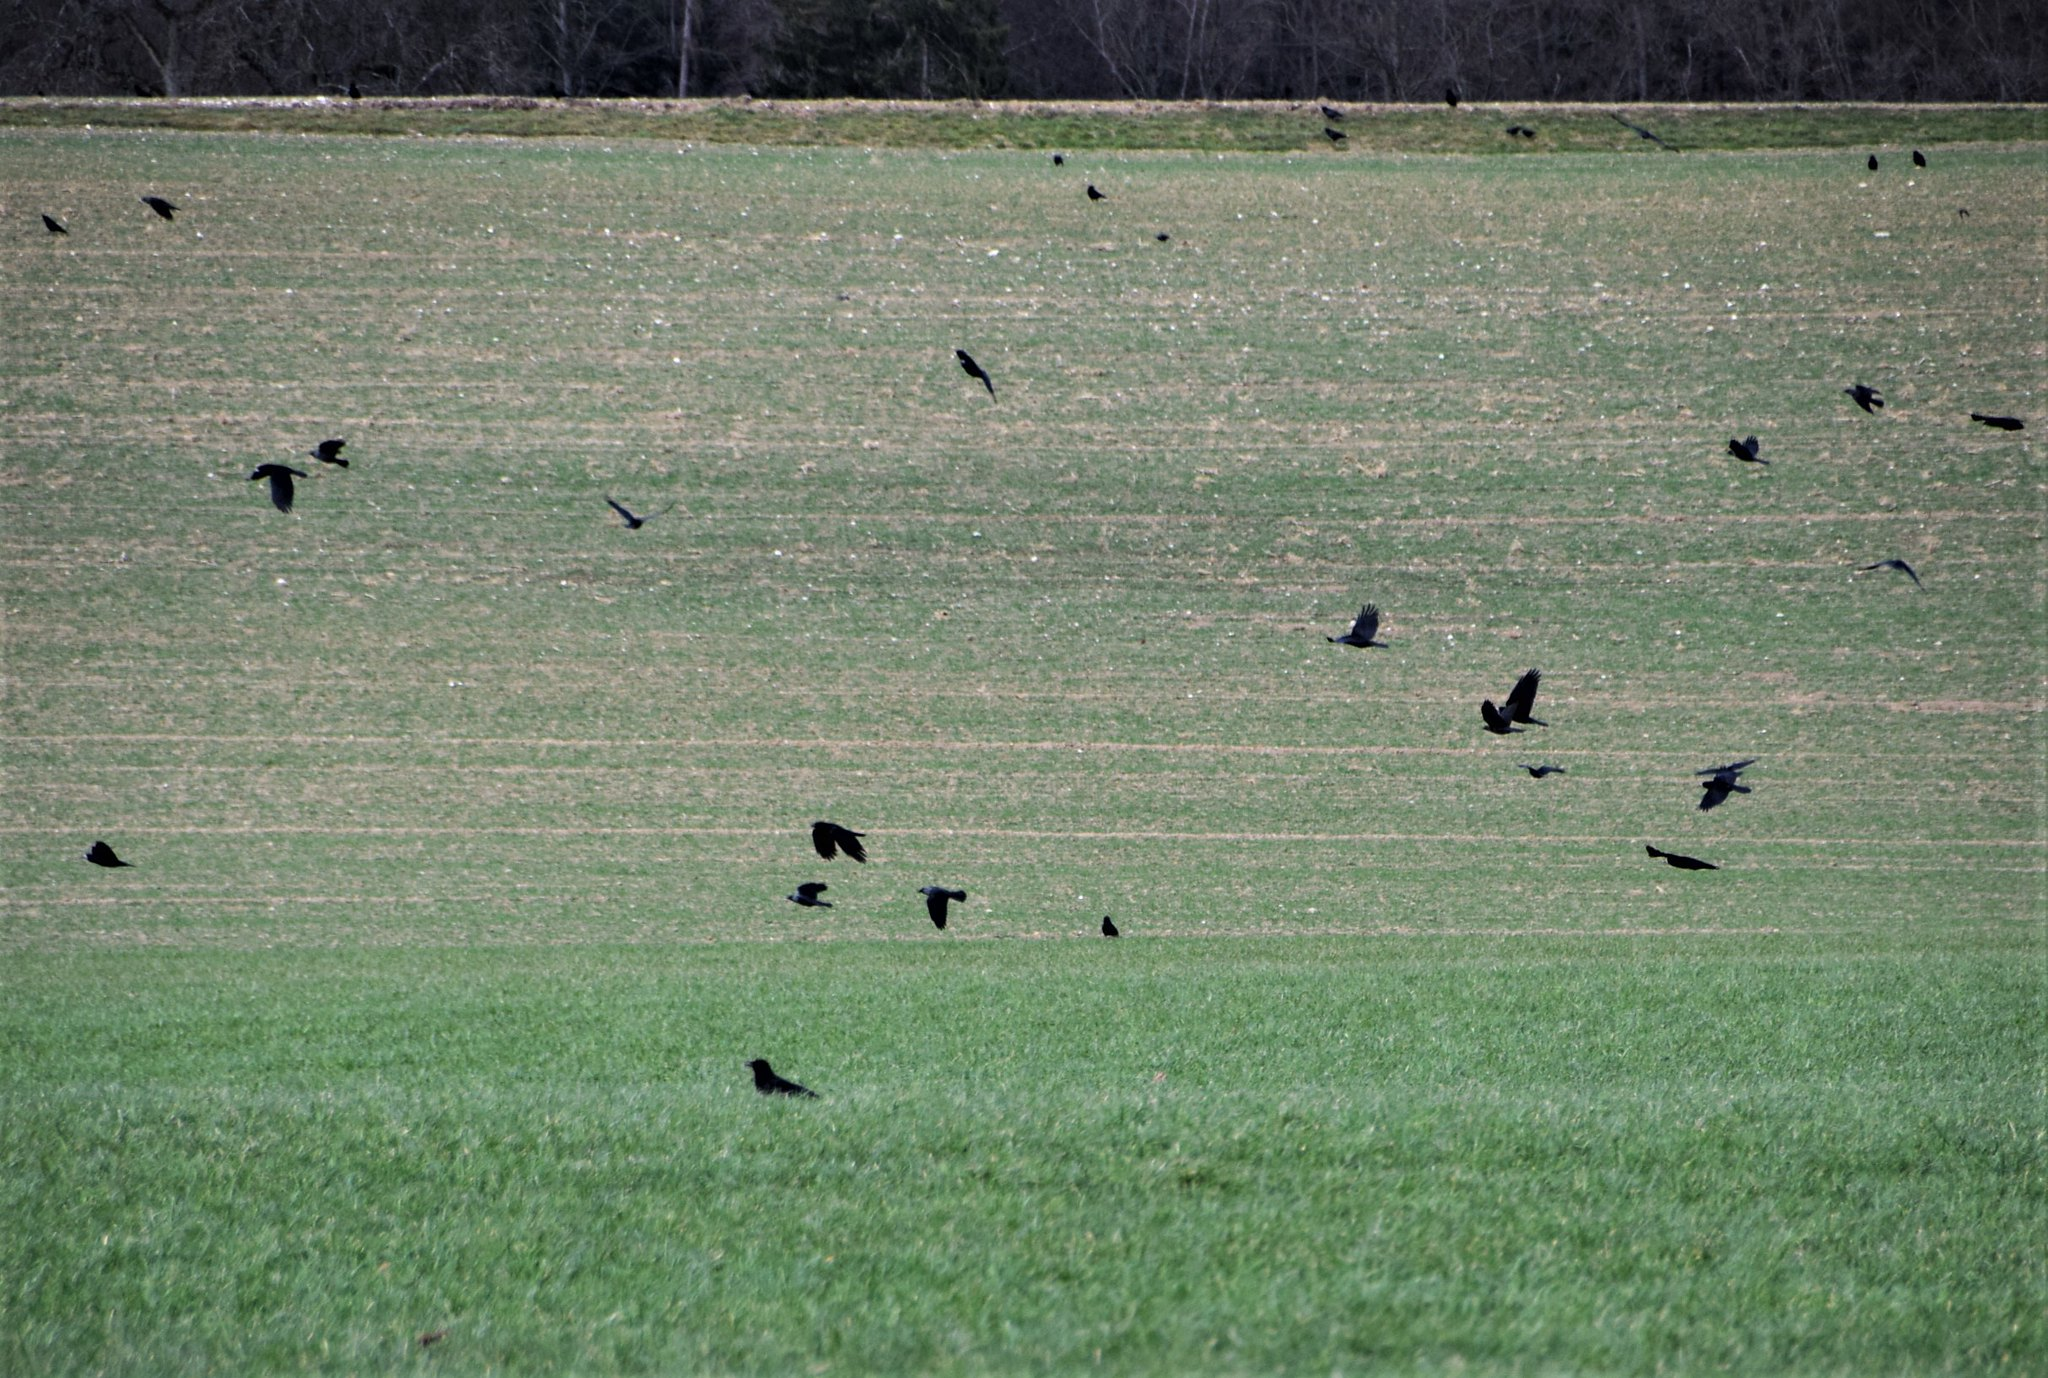 Crows 23.02 (7)